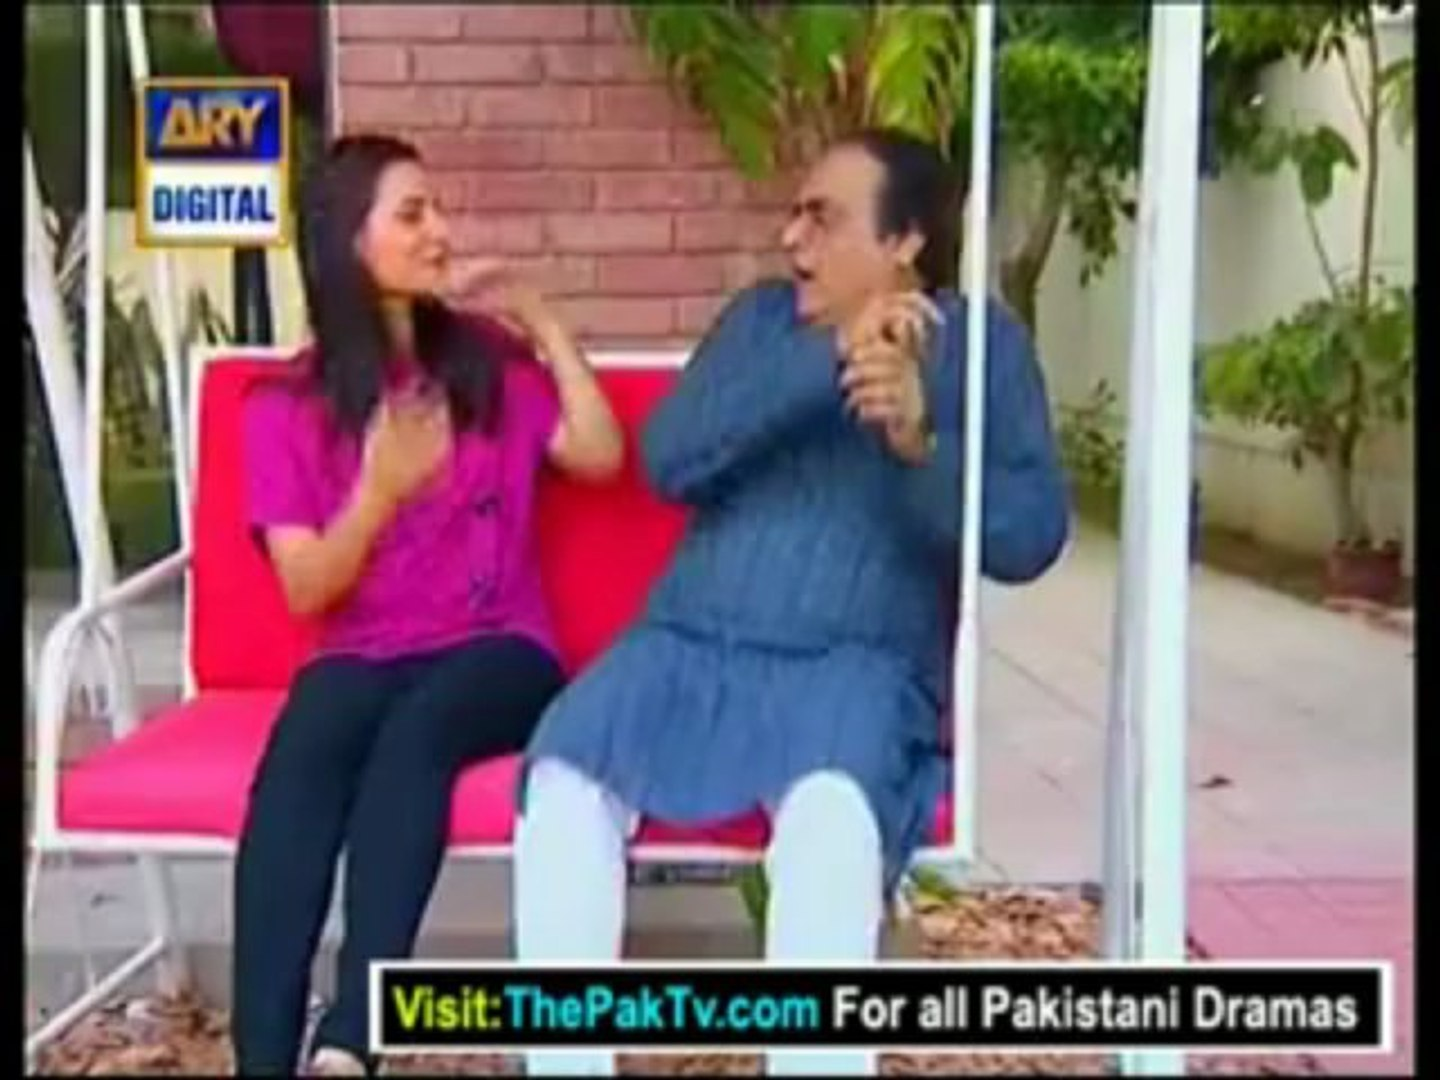 Bulbullay Episode 229 By Ary Digital - Part 2